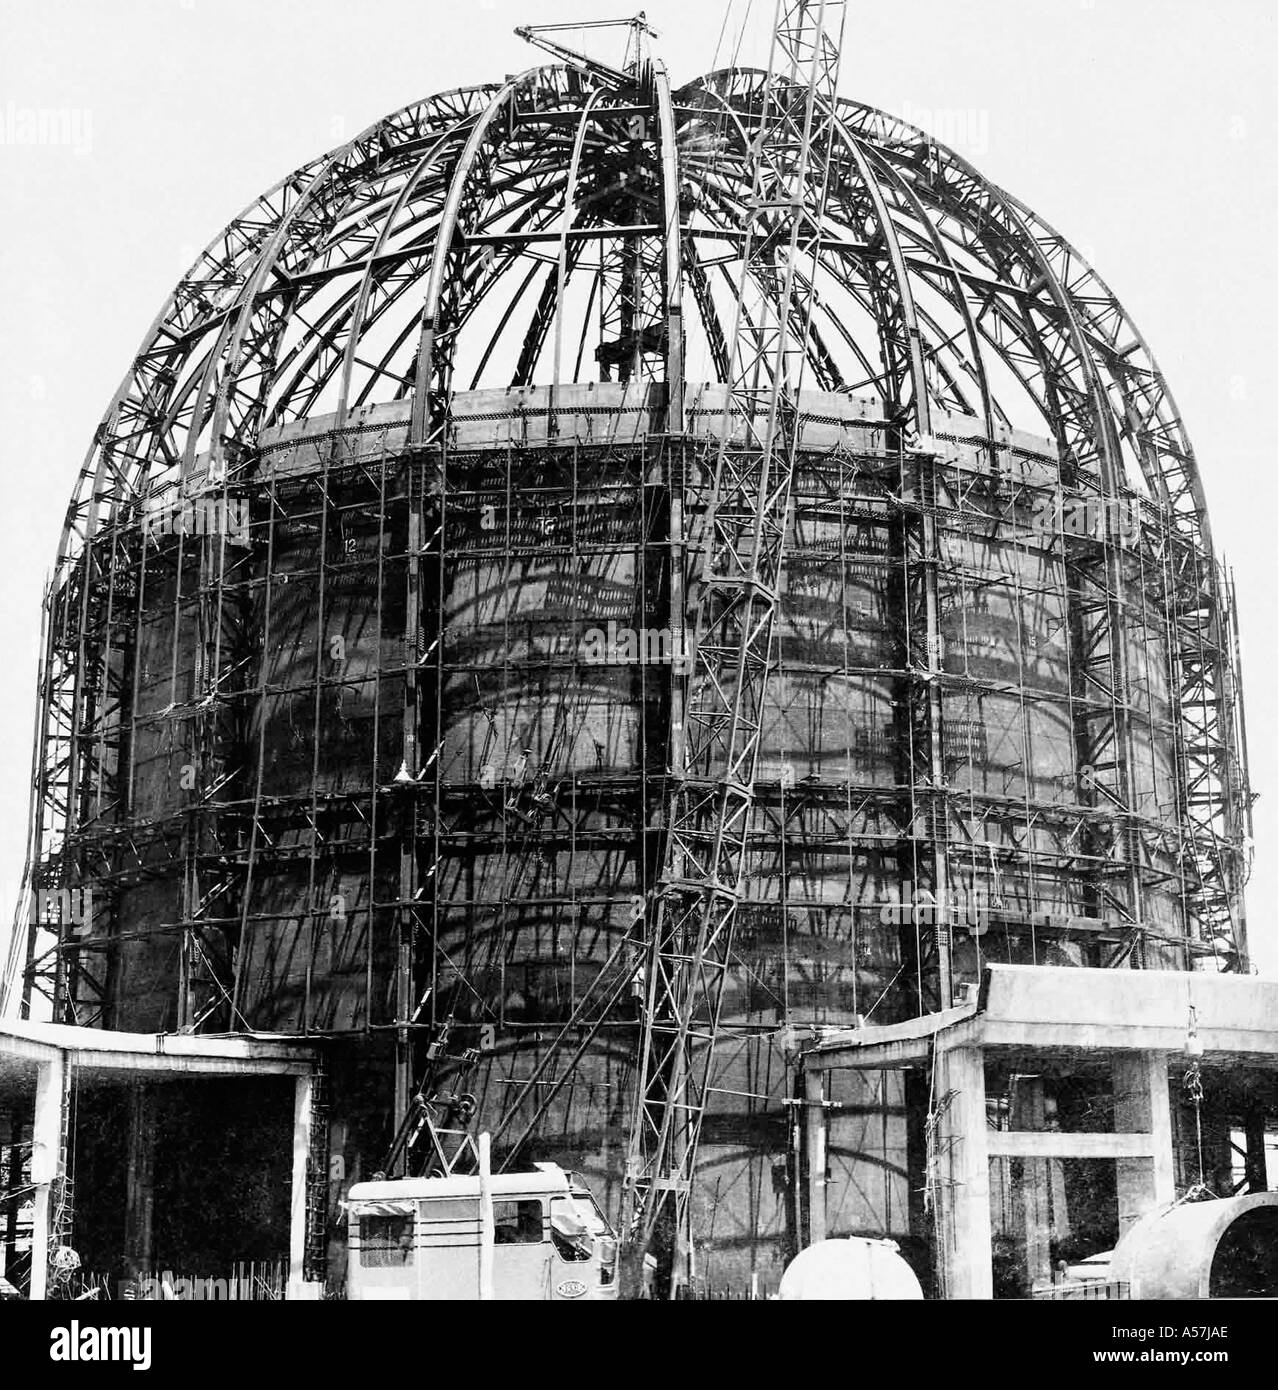 BARC Bhabha Atomic Research Centre Atomic Reactor at Trombay under construction steel girders strong inner core Stock Photo